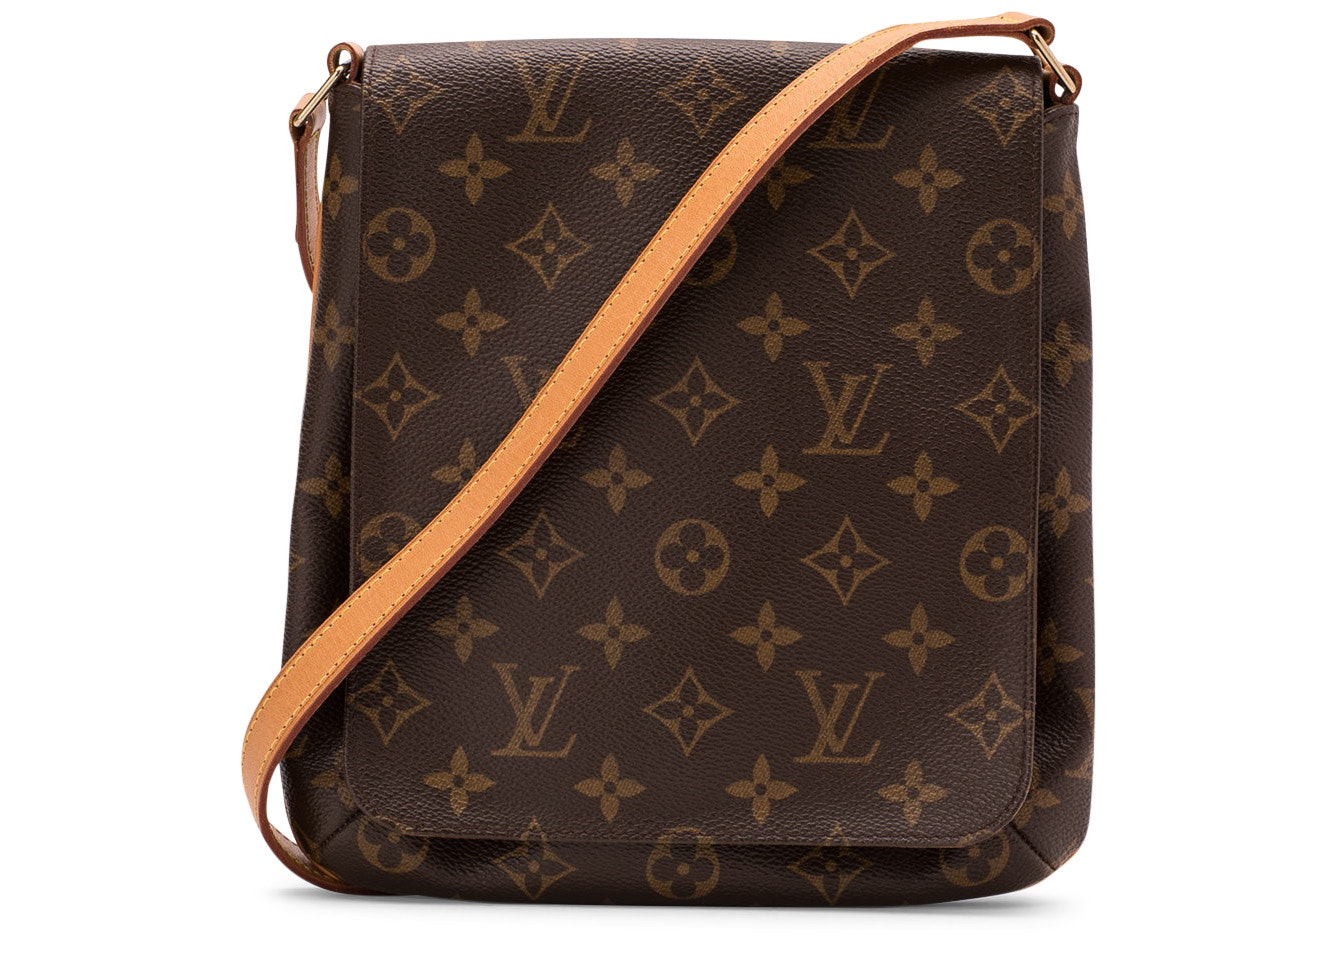 Louis Vuitton Musette Salsa Monogram PM Brown